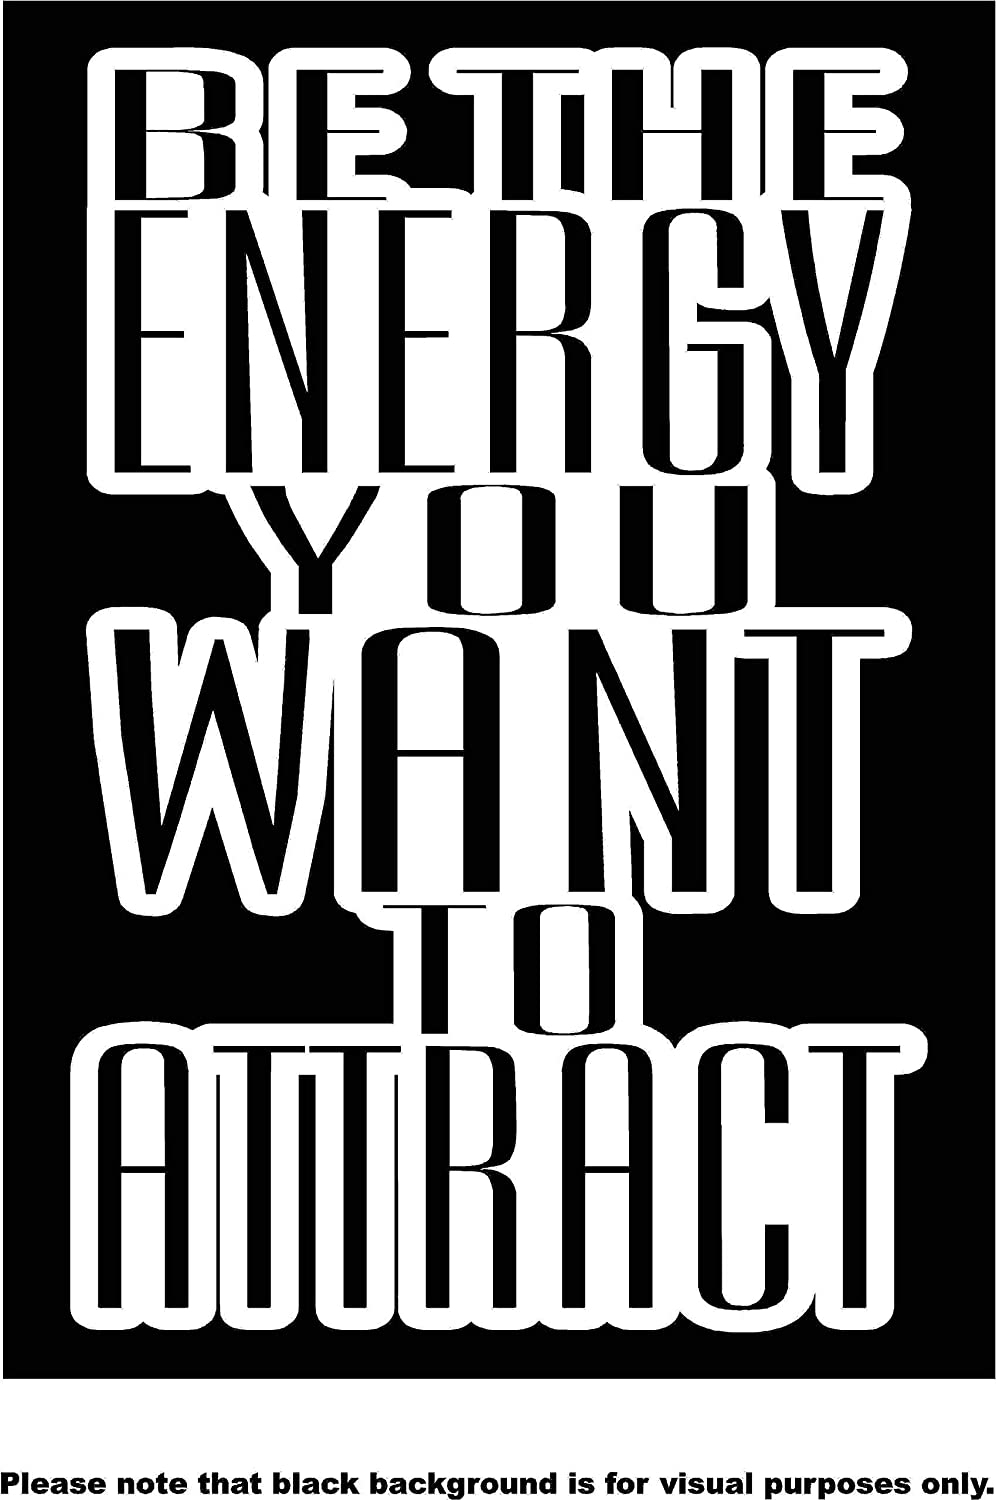 Be the Energy you want to Attract Quote Car Window Tumblers Wall Decal Sticker Vinyl Laptops Cellphones Phones Tablets Ipads Helmets Motorcycles Computer Towers V and T Gifts